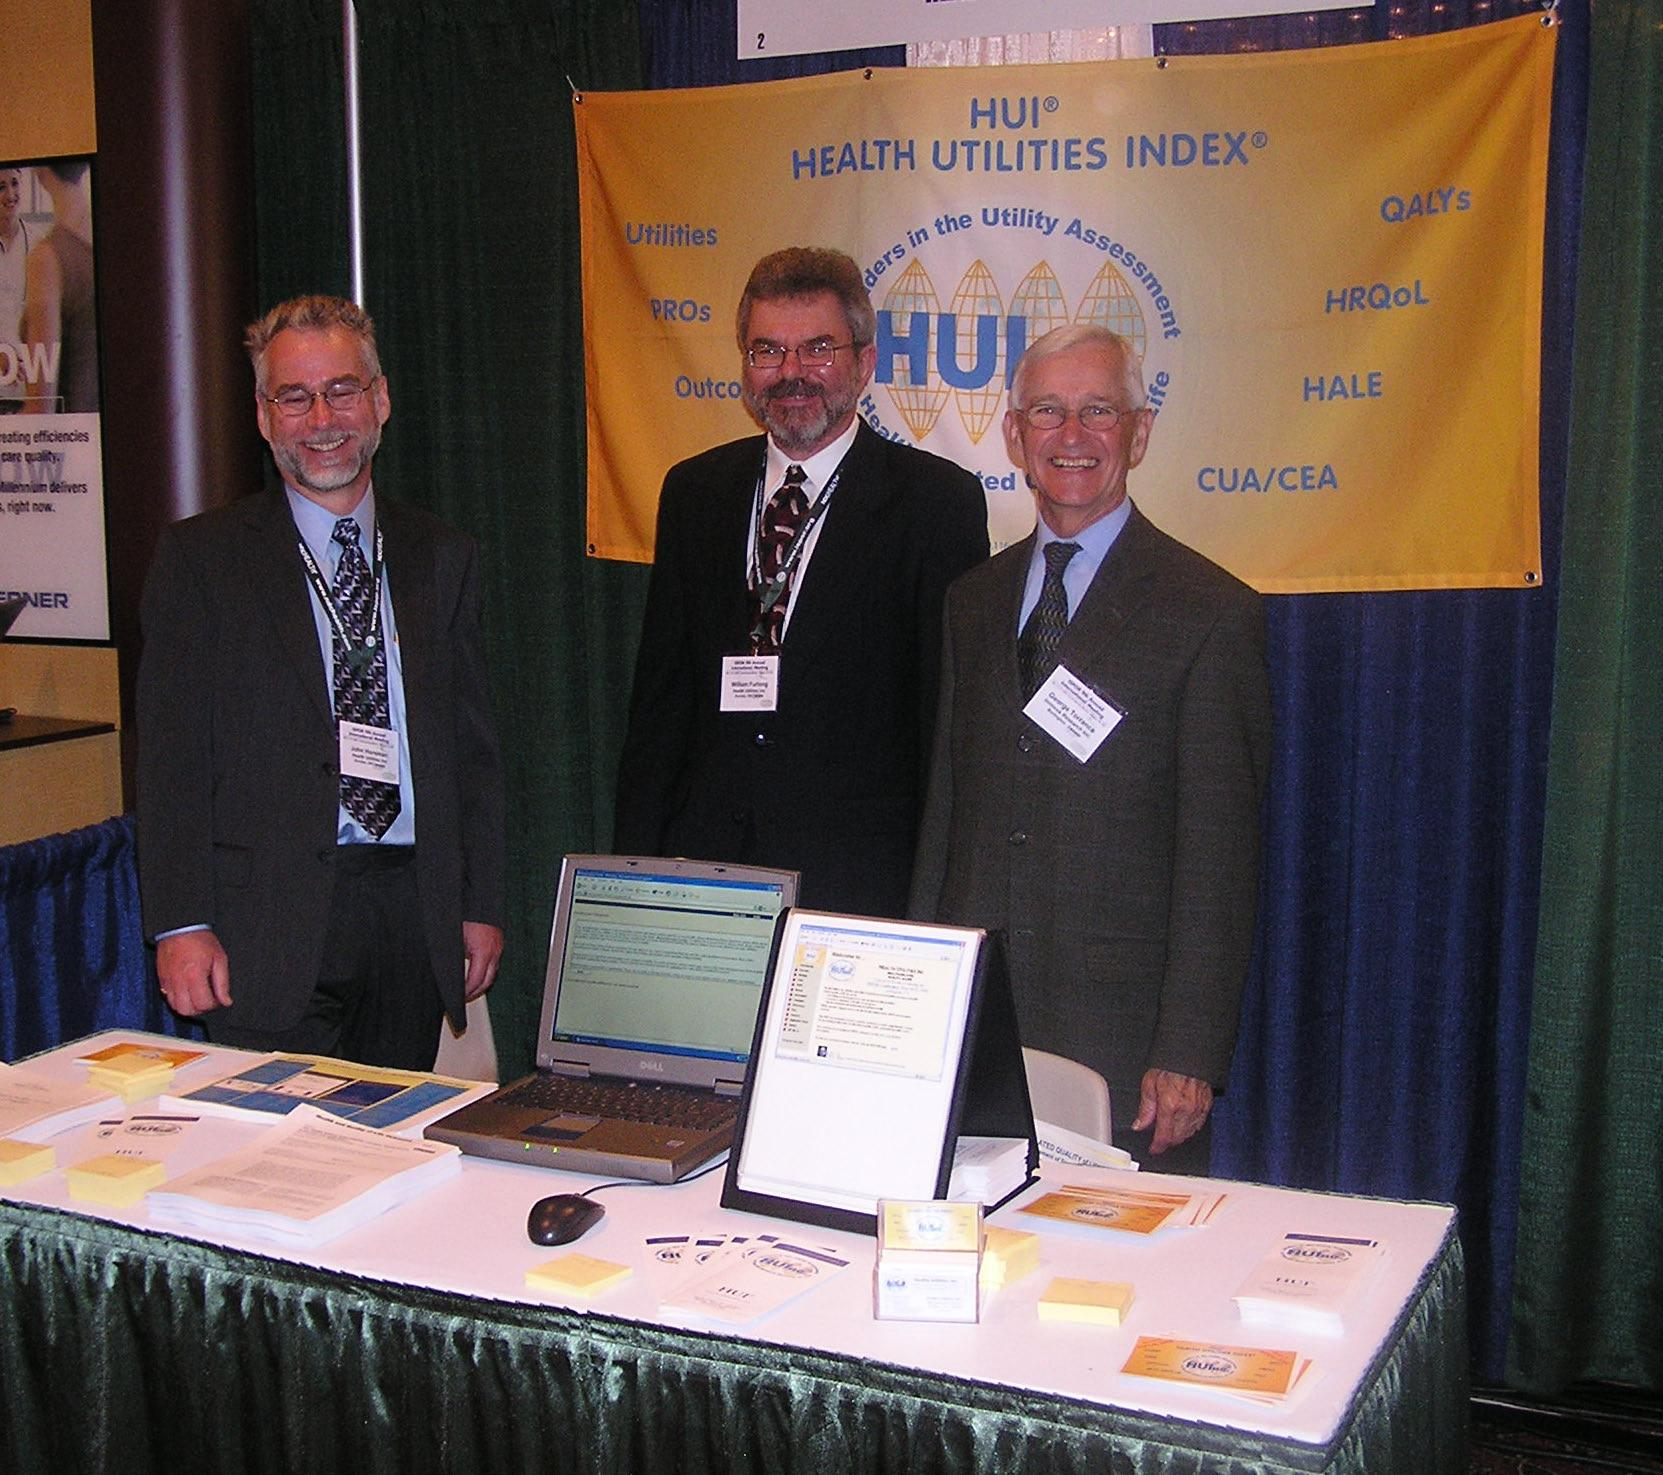 L to R - John Horsman, Bill Furlong, George Torrance at the HUInc Booth, International Society for Pharmacoeconomics and Outcomes Research - ISPOR, May 2003, Arlington, VA, USA.